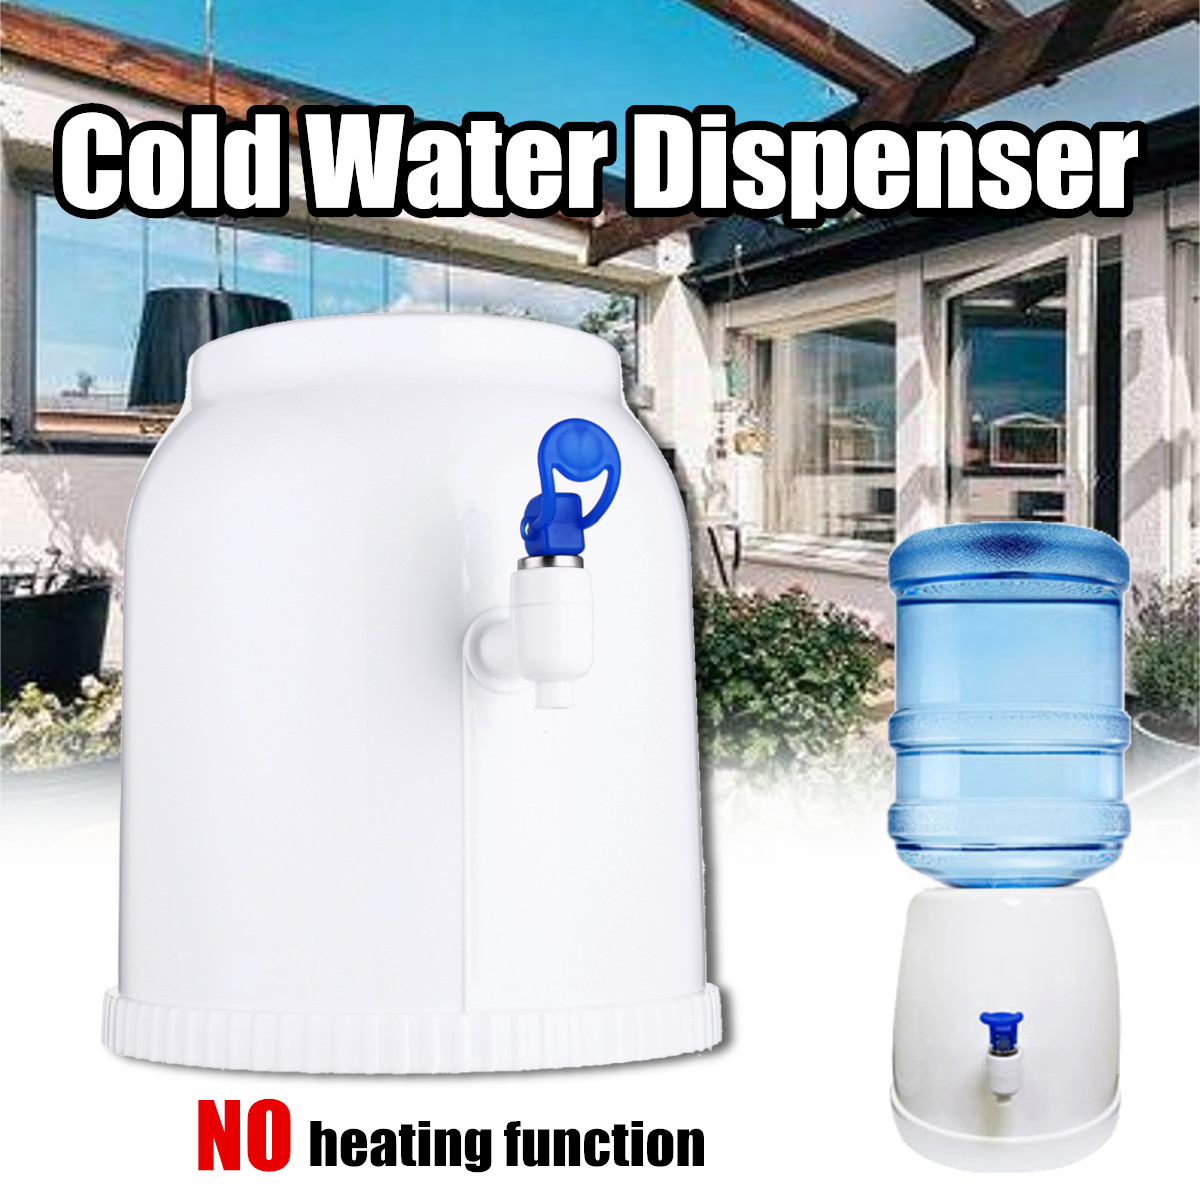 Cold Water Dispenser Portable Countertop Cooler Drinking Faucet Tool Water Pump